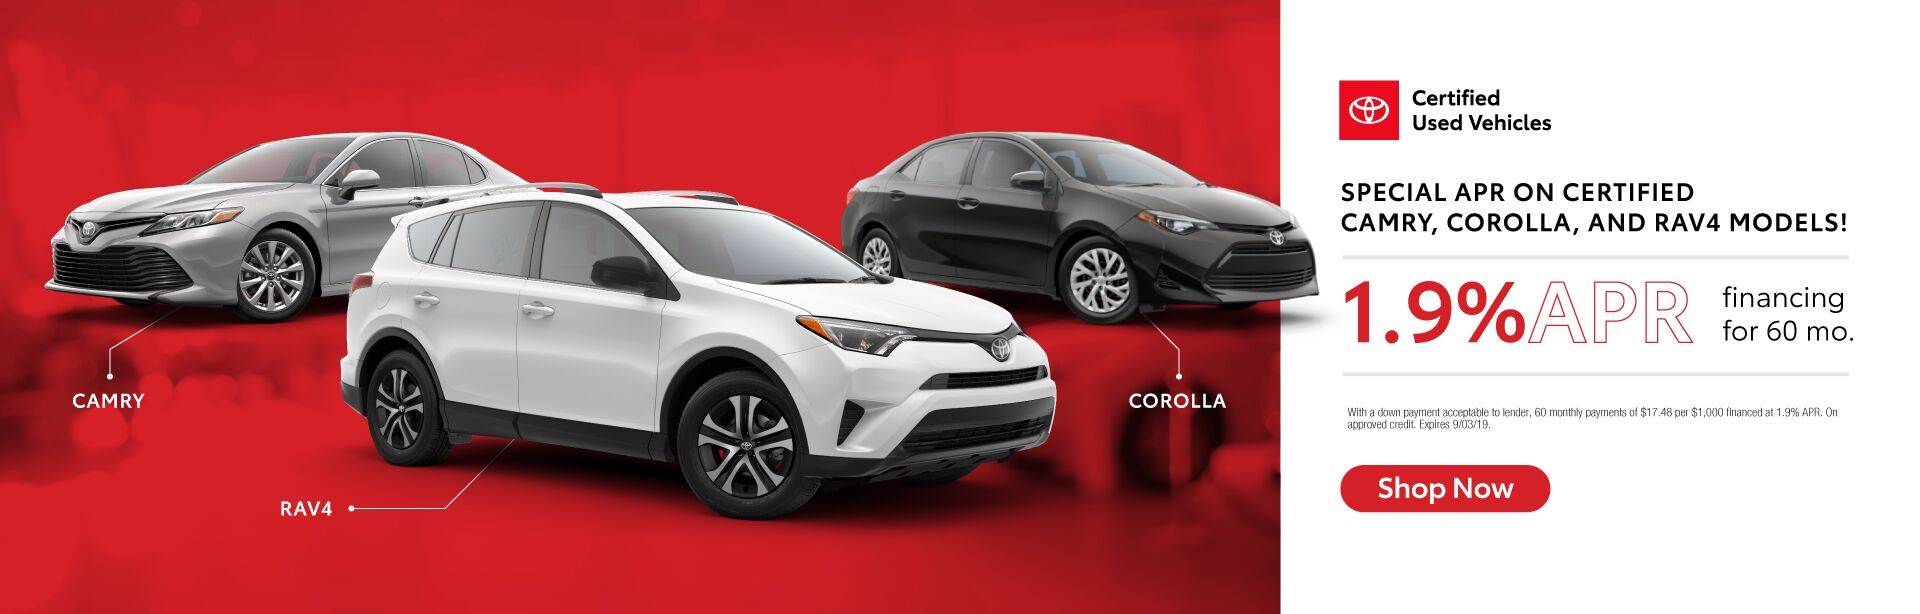 Special 1.9% APR Financing for 60 Months on Certified Camry, Corolla, and RAV4 Models!